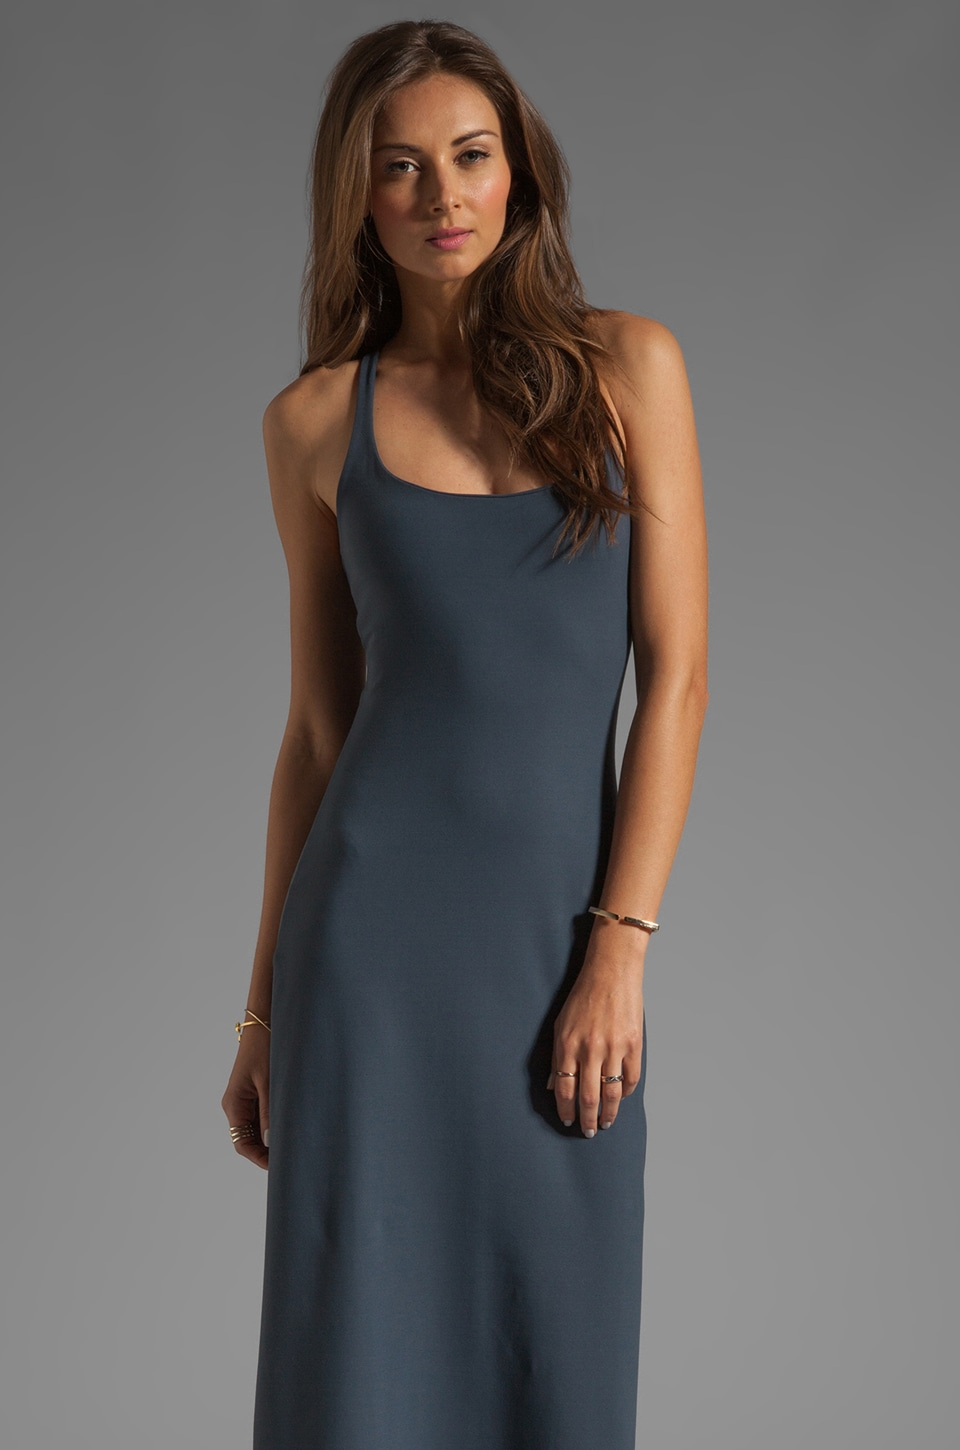 Susana Monaco Racer Maxi Dress in Charcoal